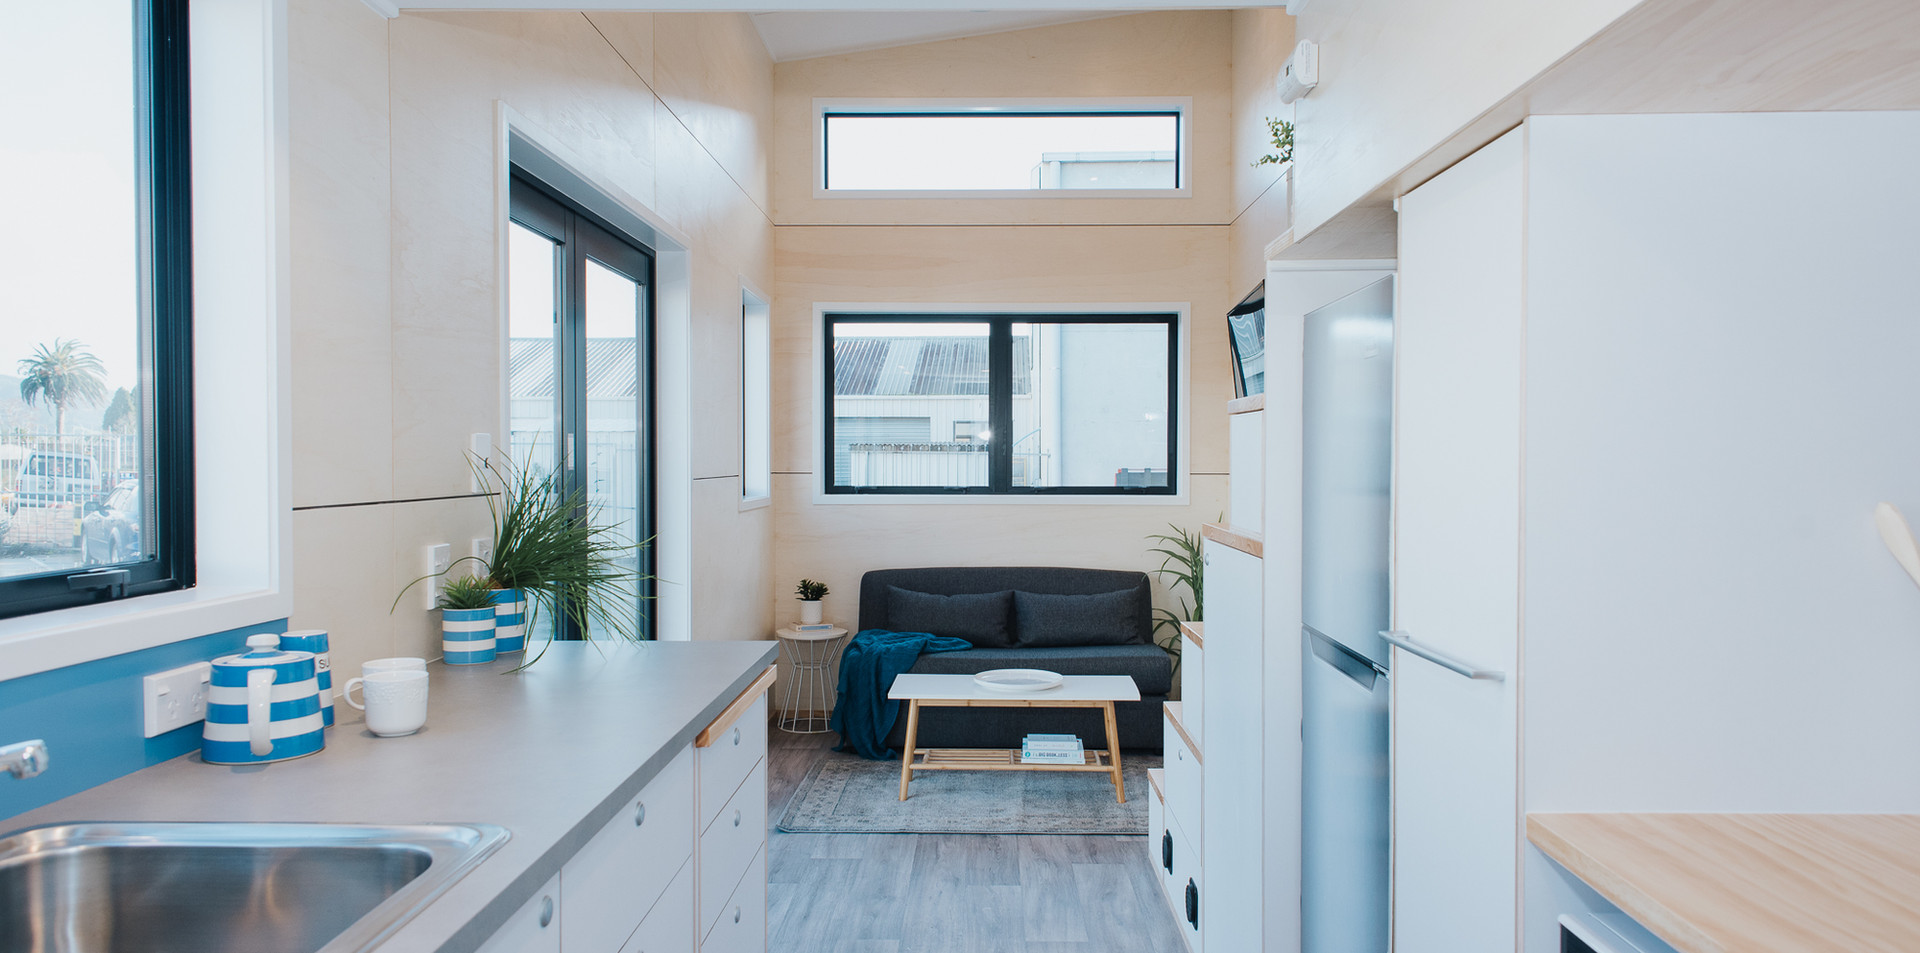 New Beginnings Tiny House